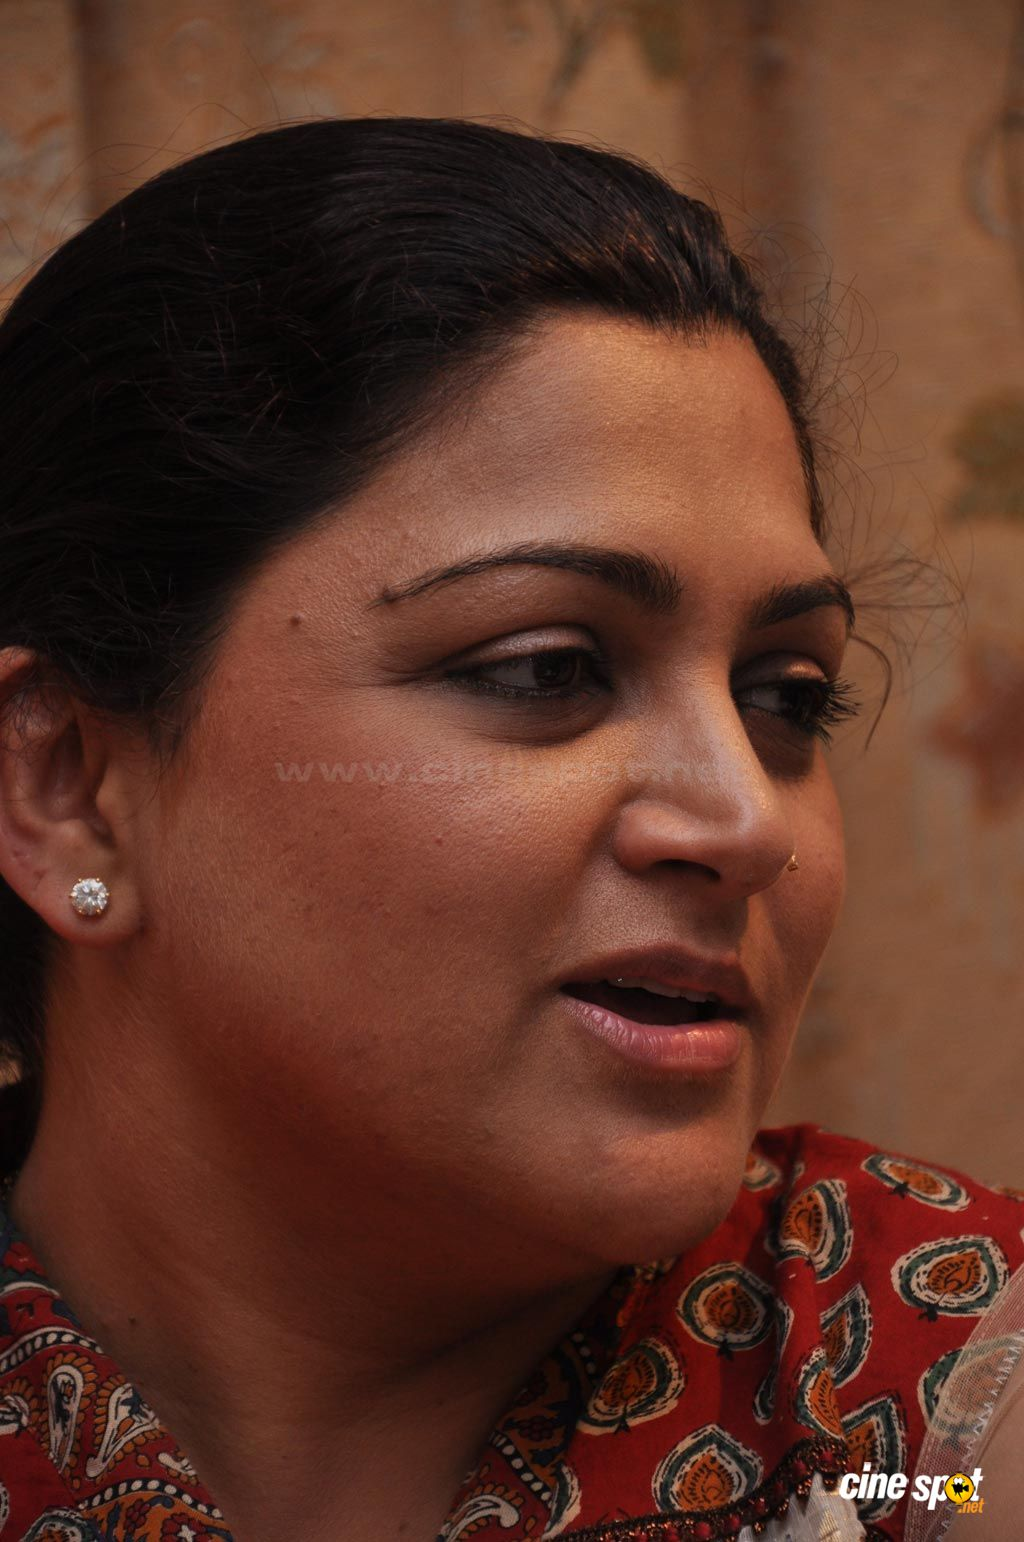 So... ditzy. www Kushboo sex fuck her